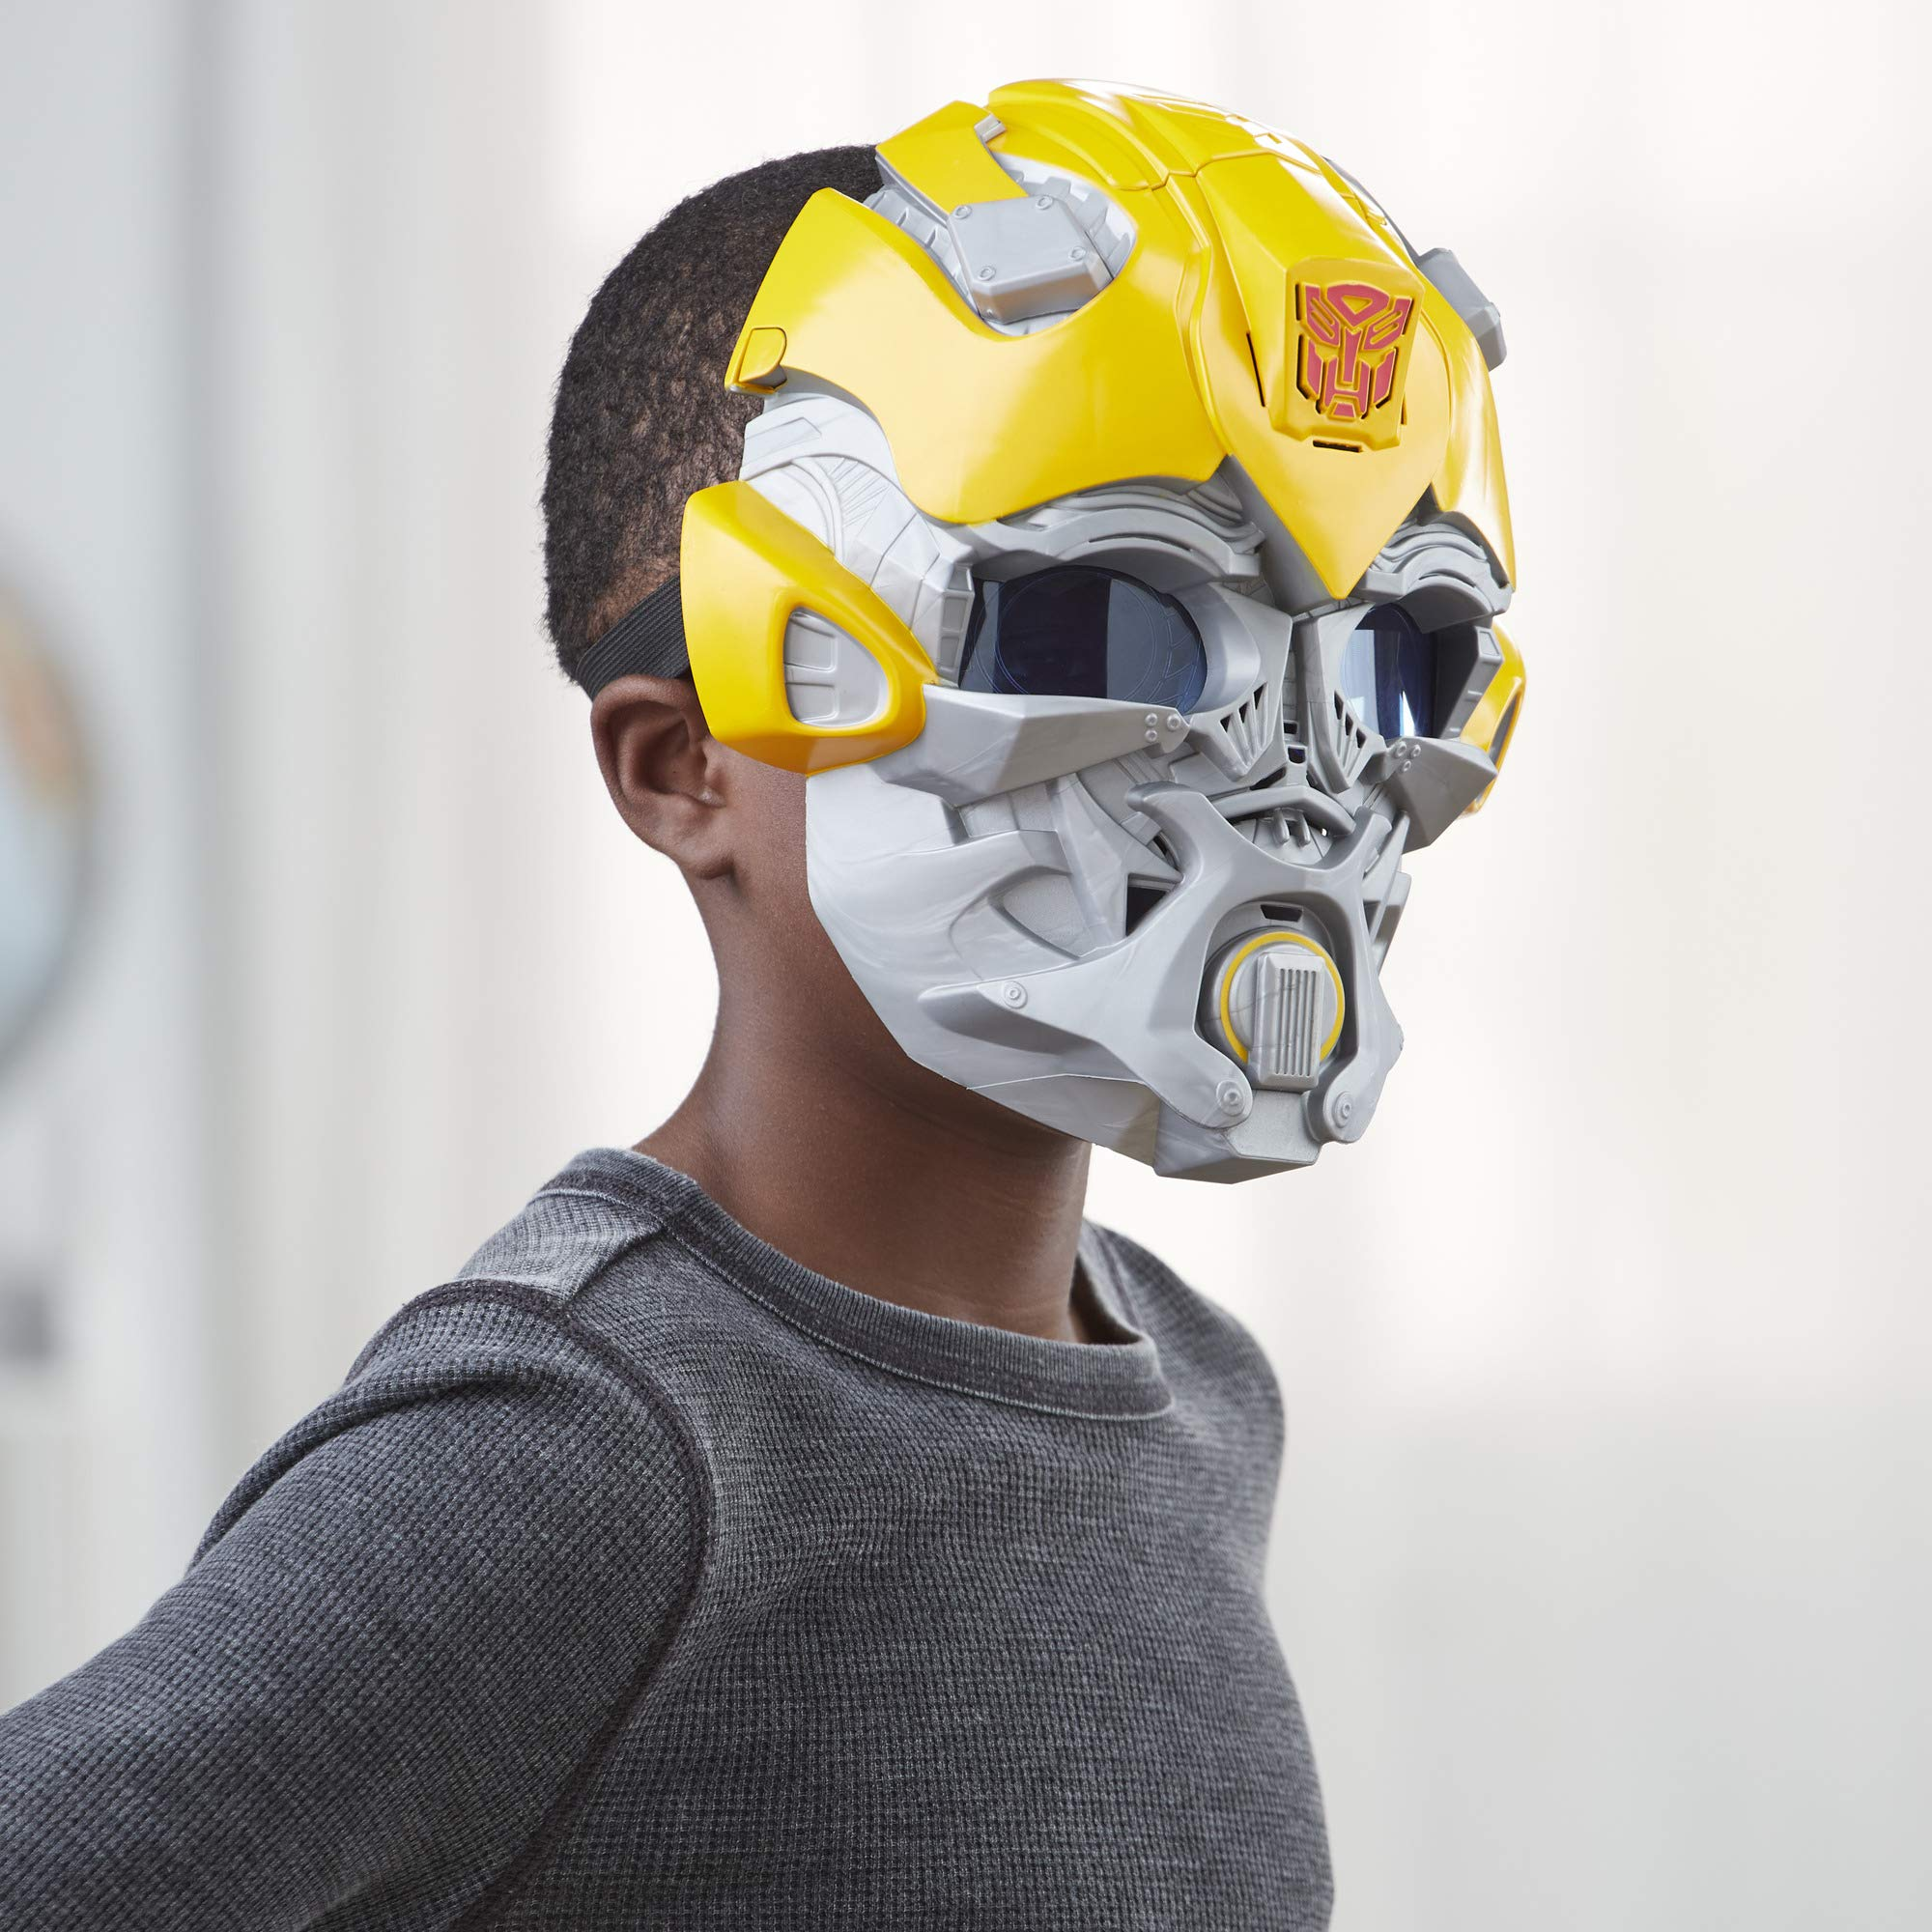 Transformers: Bumblebee -- Bumblebee Voice Changer Mask by Transformers (Image #9)